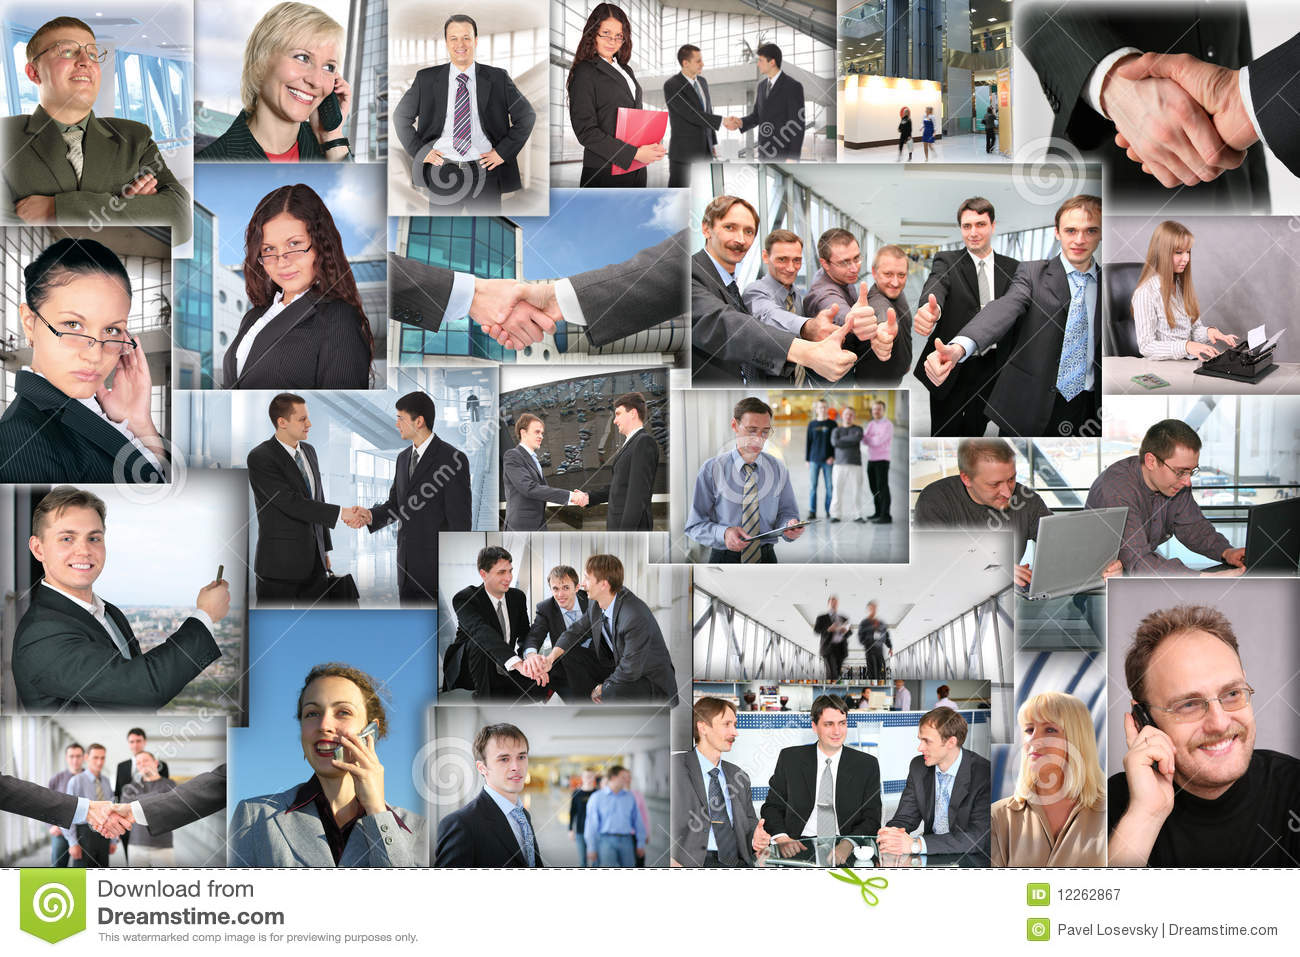 Download Many Business Pictures, Collage Stock Image - Image of patroness, happy: 12262867